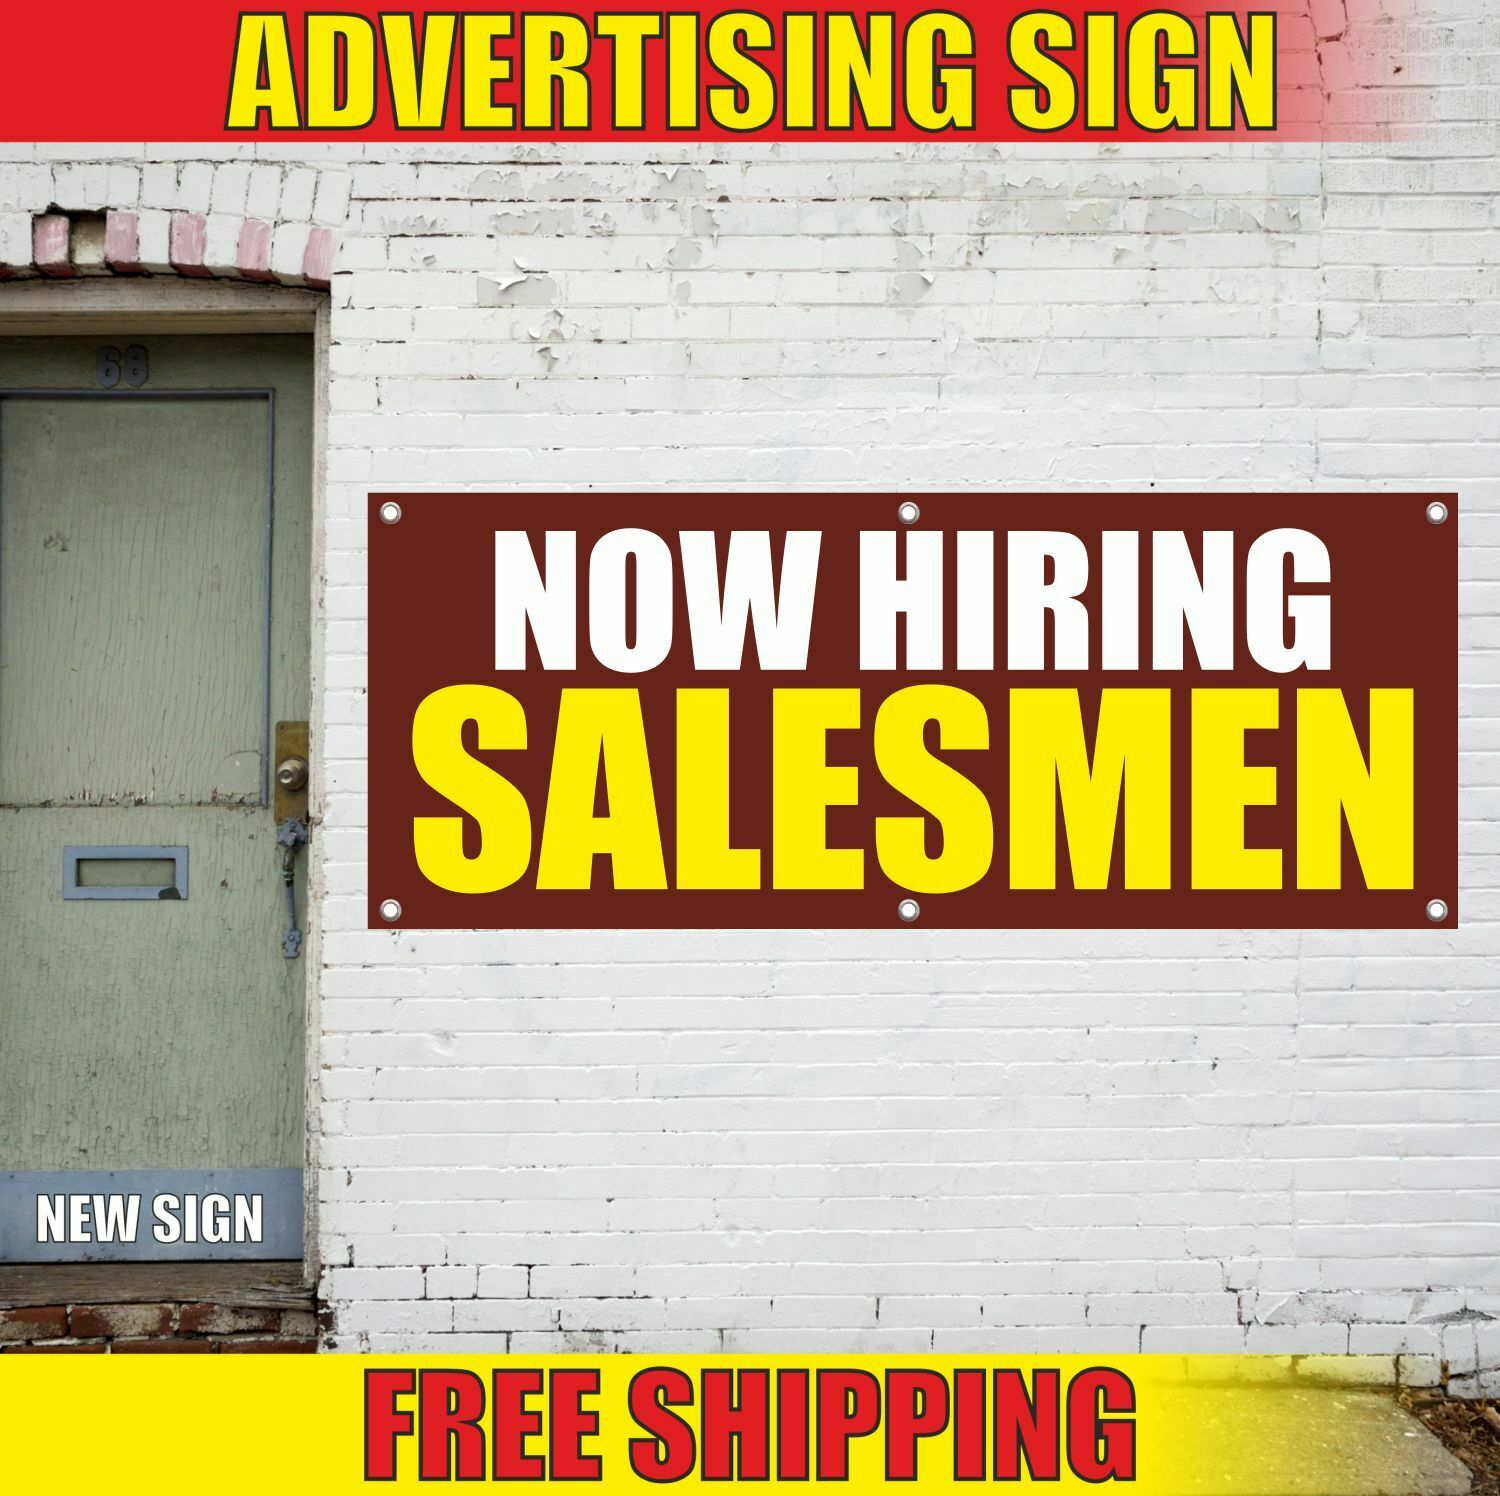 NOW HIRING SALESMEN Advertising Banner Vinyl Mesh Decal Sign FAIR JOB WANTED 2